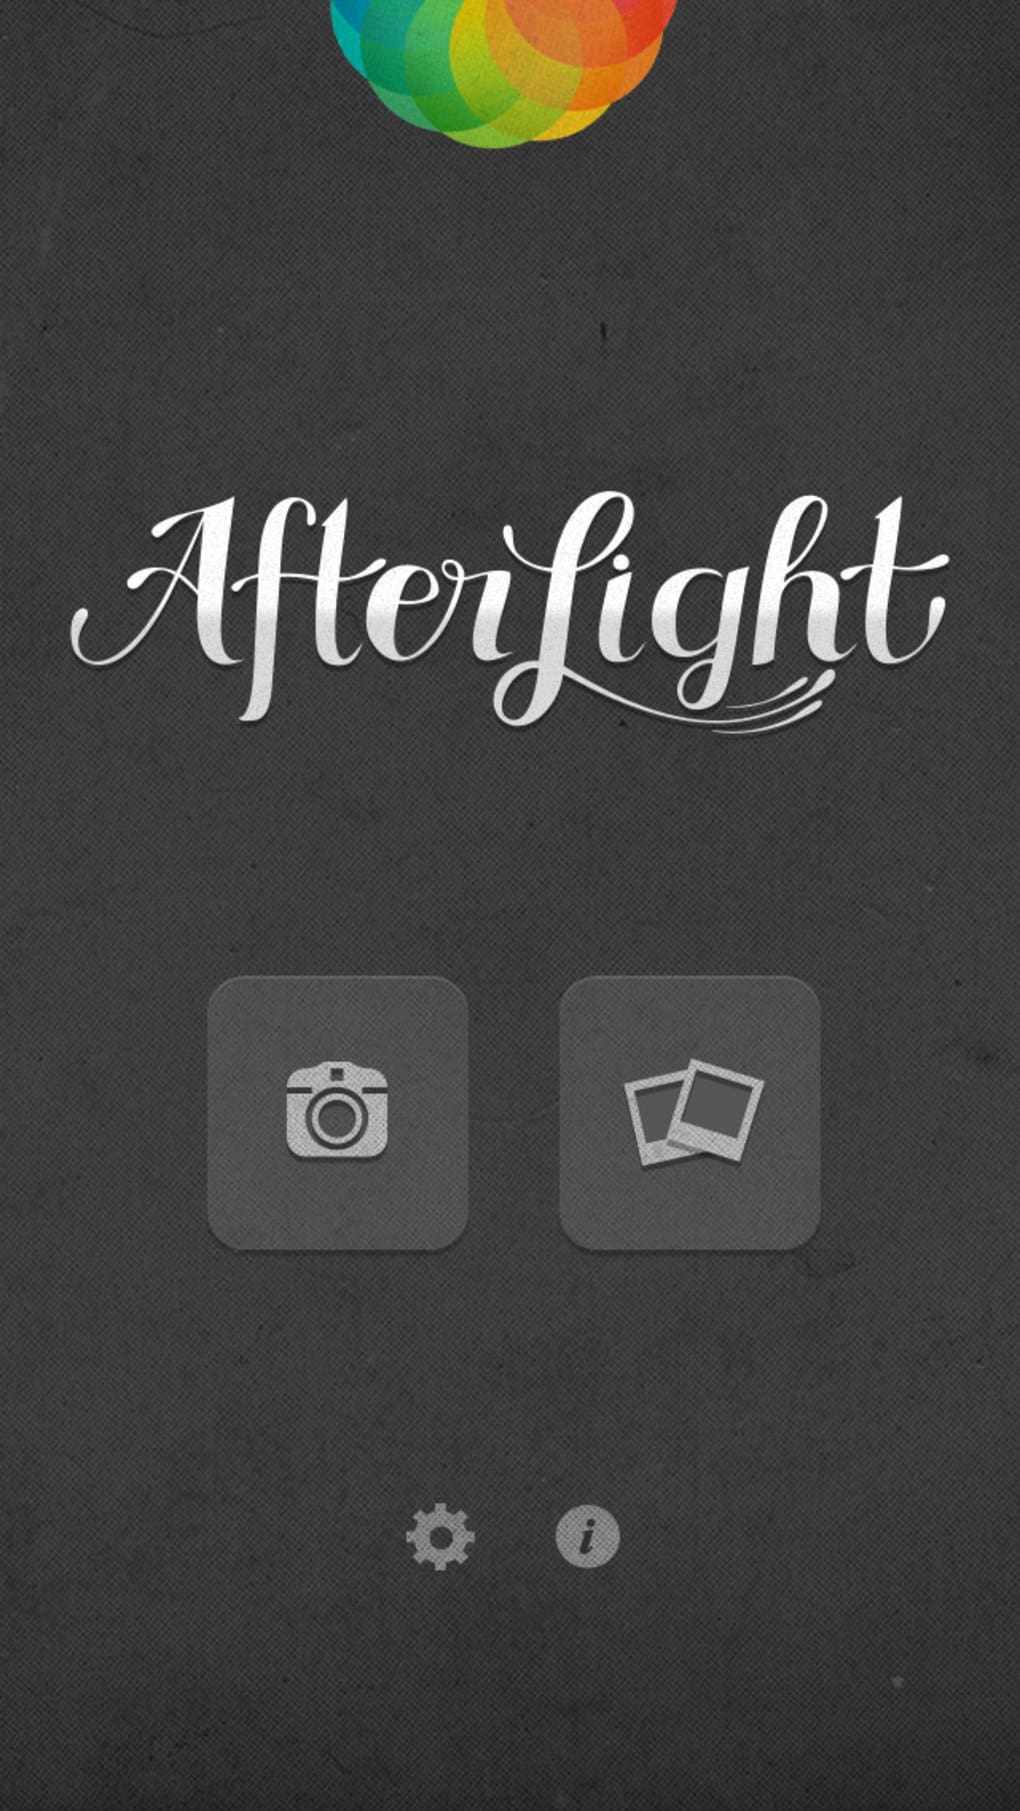 Afterlight for iPhone - Download